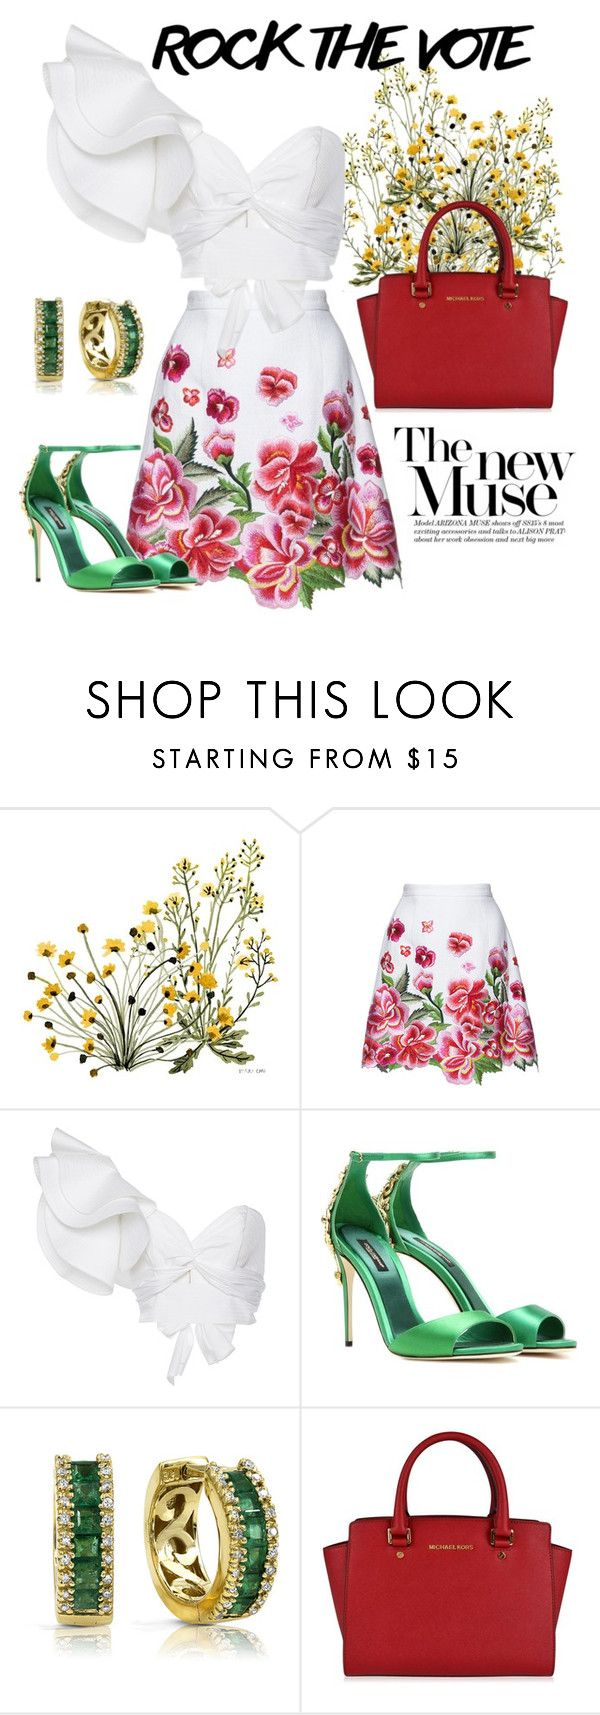 """""""Patriotism overload"""" by gladys-michelle-appleseed ❤ liked on Polyvore featuring Andrew Gn, Johanna Ortiz, Dolce&Gabbana, Effy Jewelry and MICHAEL Michael Kors"""